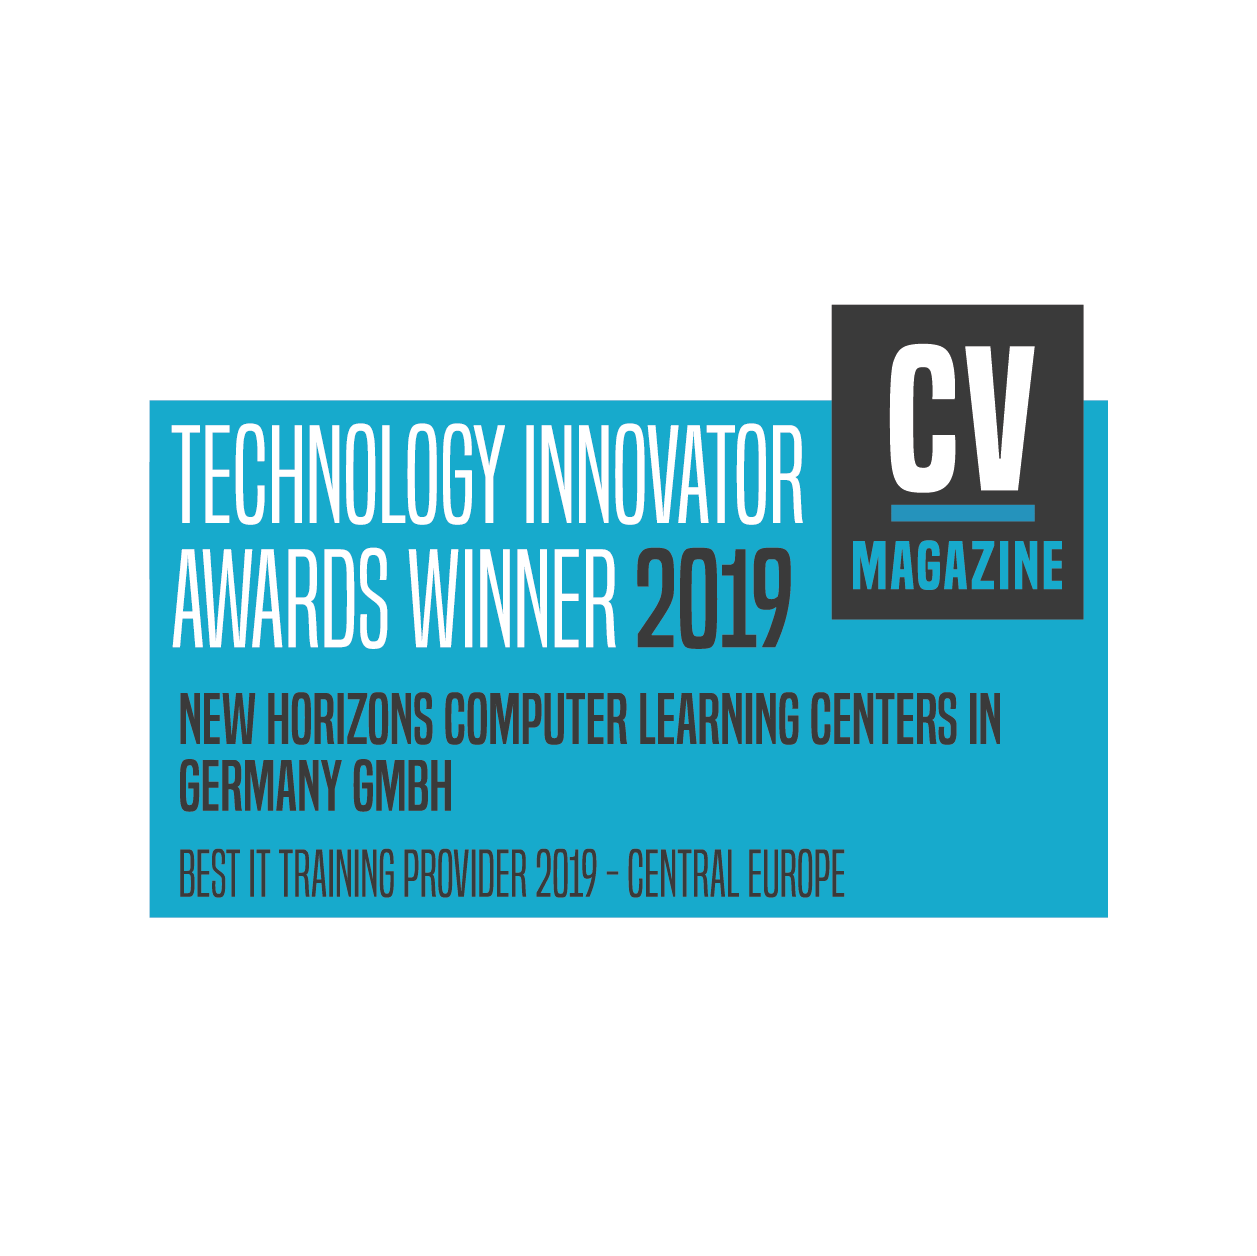 New-Horizons-CV-Technology-Innovator-2019-Awards-Winners